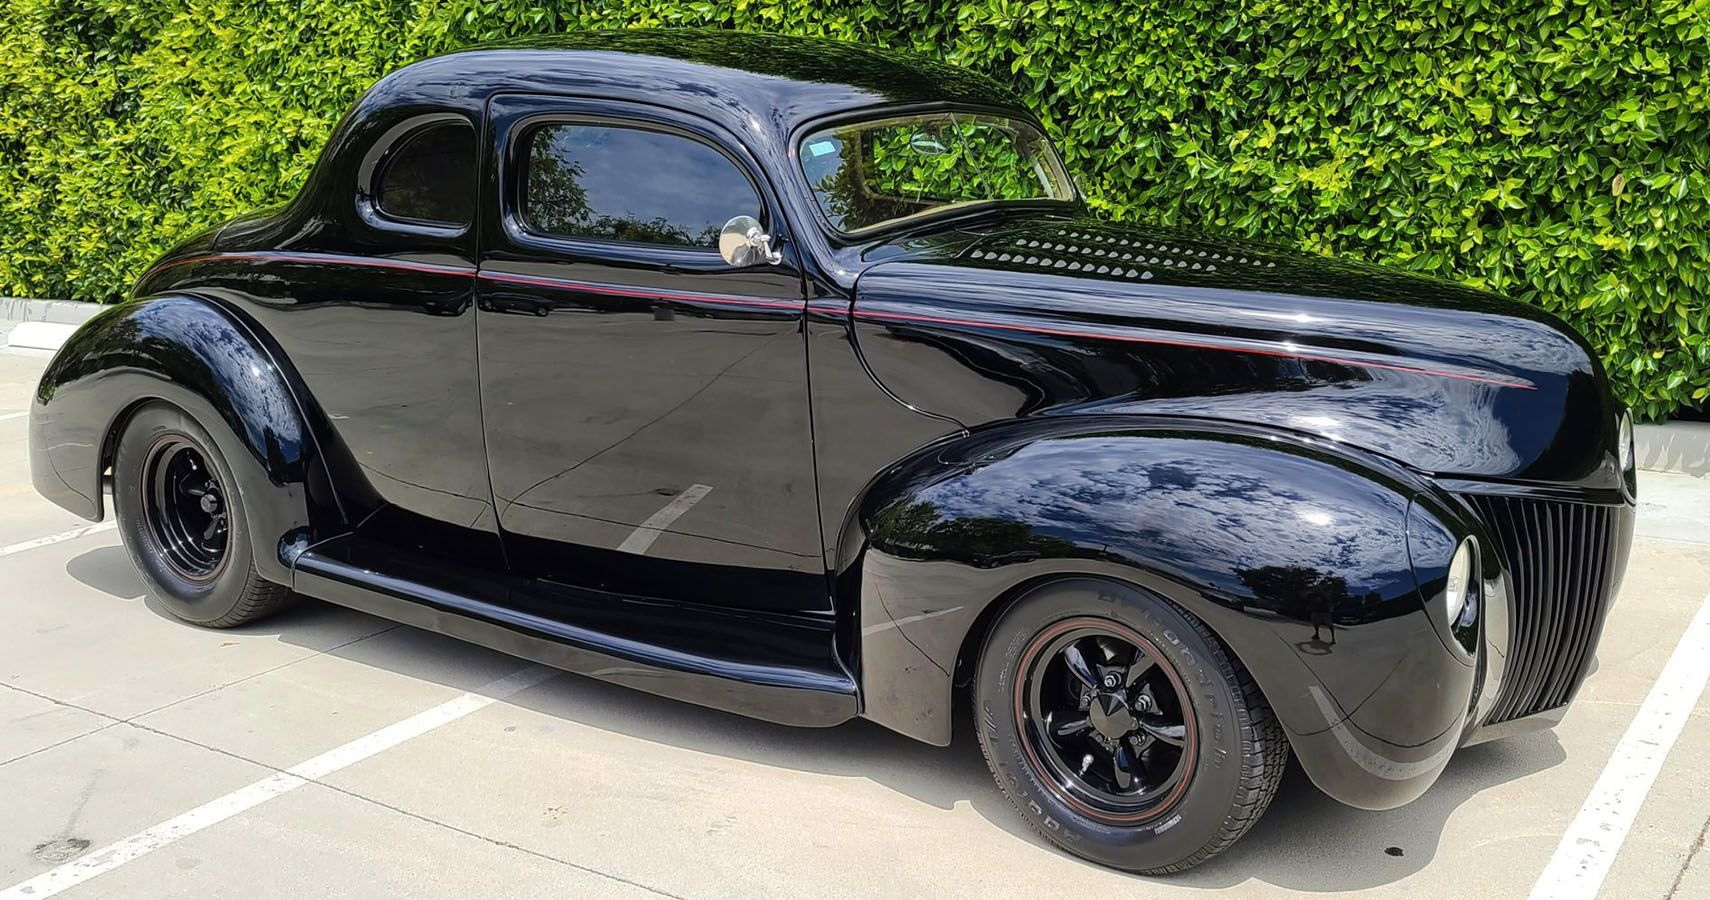 Sons Of Anarchy Creator Kurt Sutter Selling His 1939 Ford Hot Rod For Charity